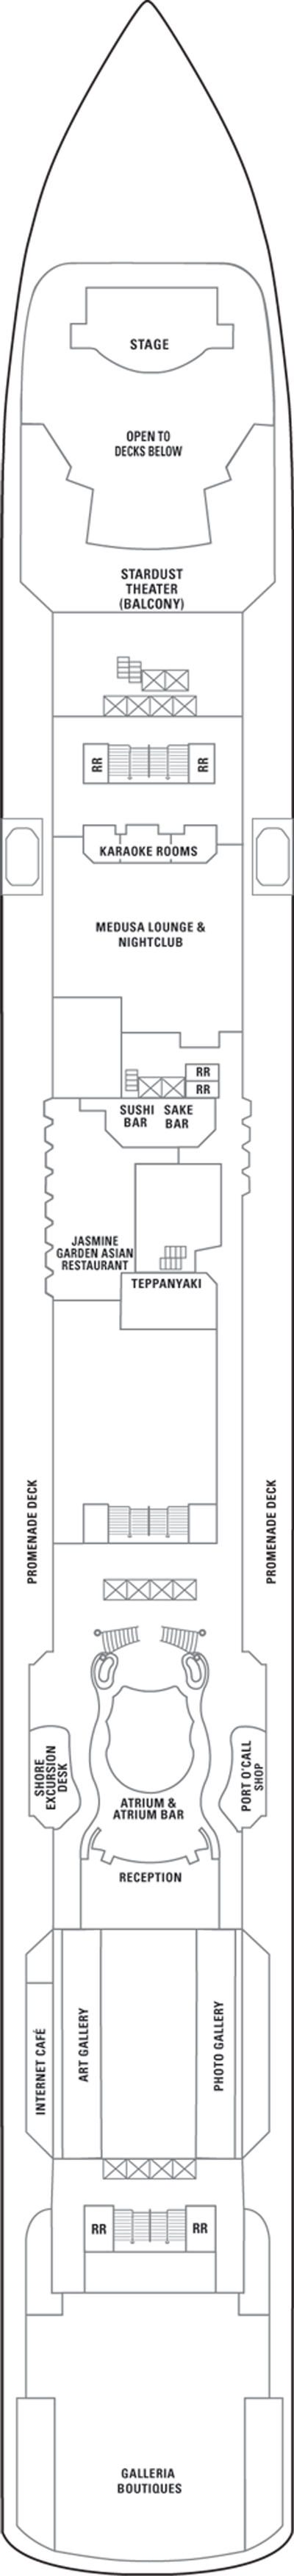 Norwegian Jade Deck 7 layout